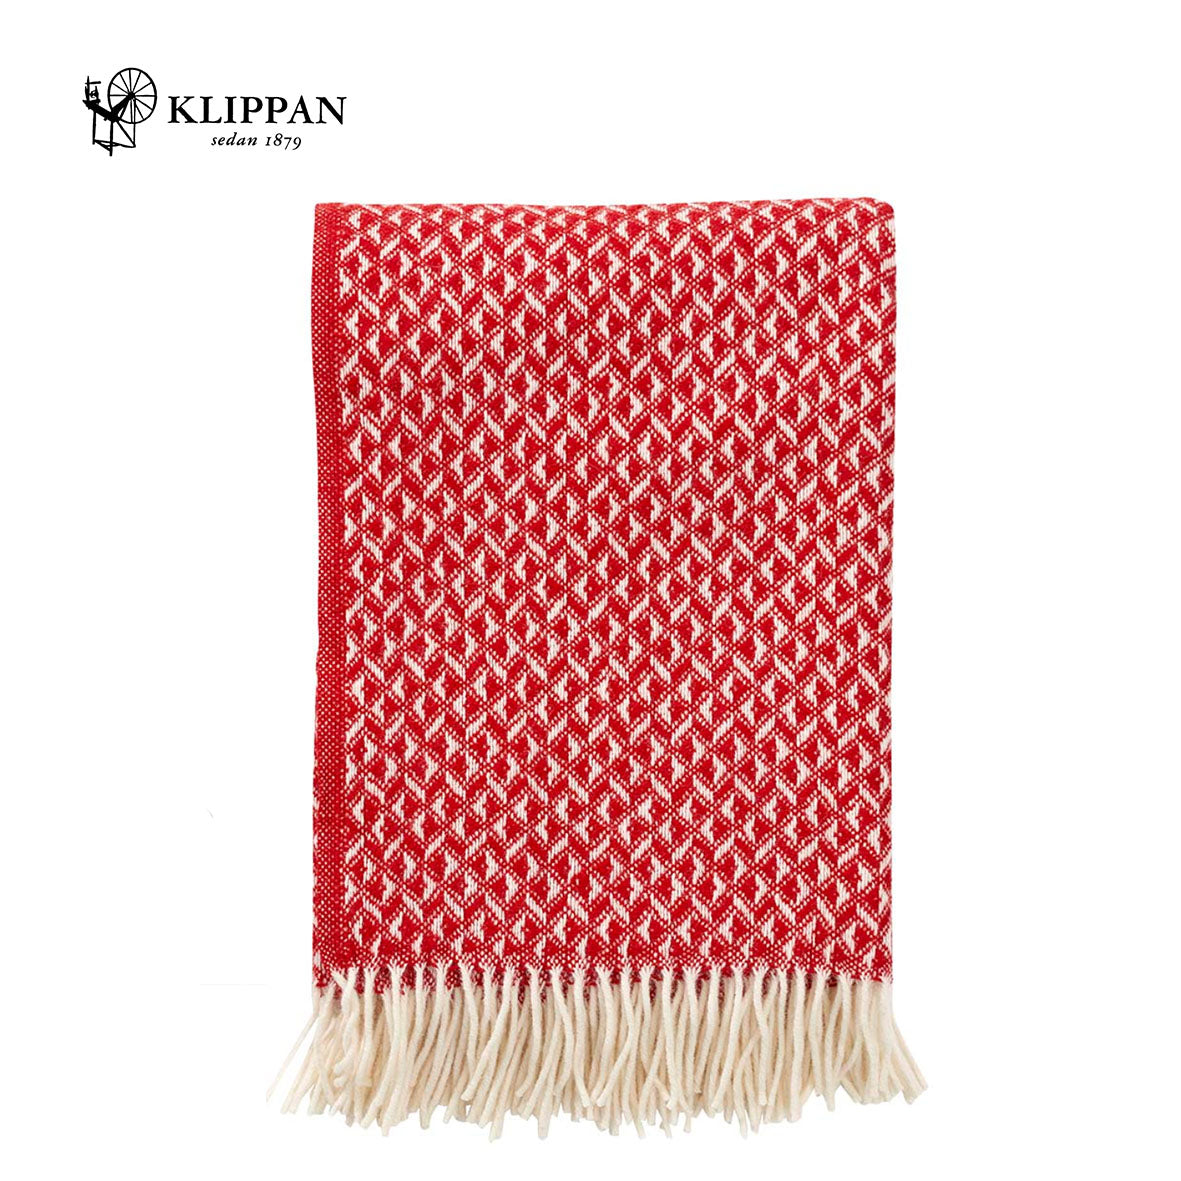 KLIPPAN Anna Woollen Throw, 130x200cm